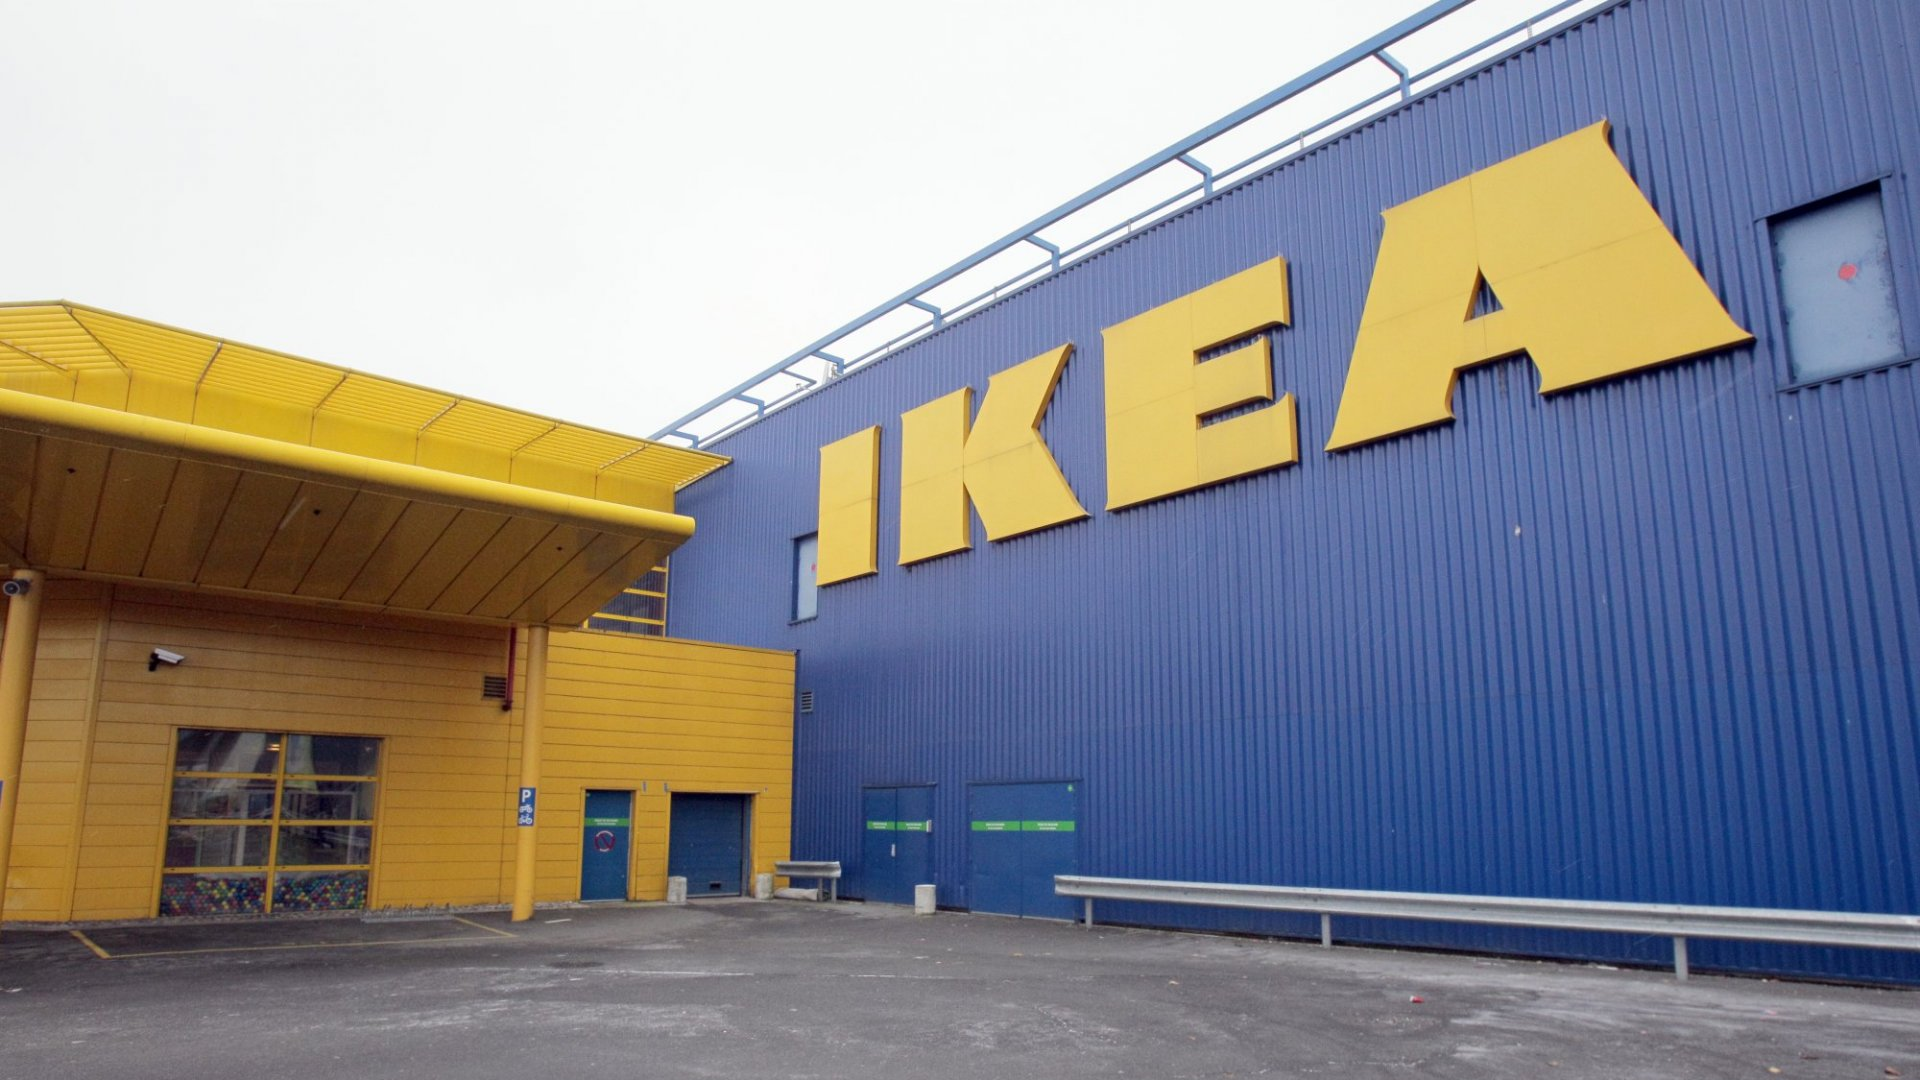 IKEA Poland Fires Man for Anti-LGBTQ Posts. Could You?